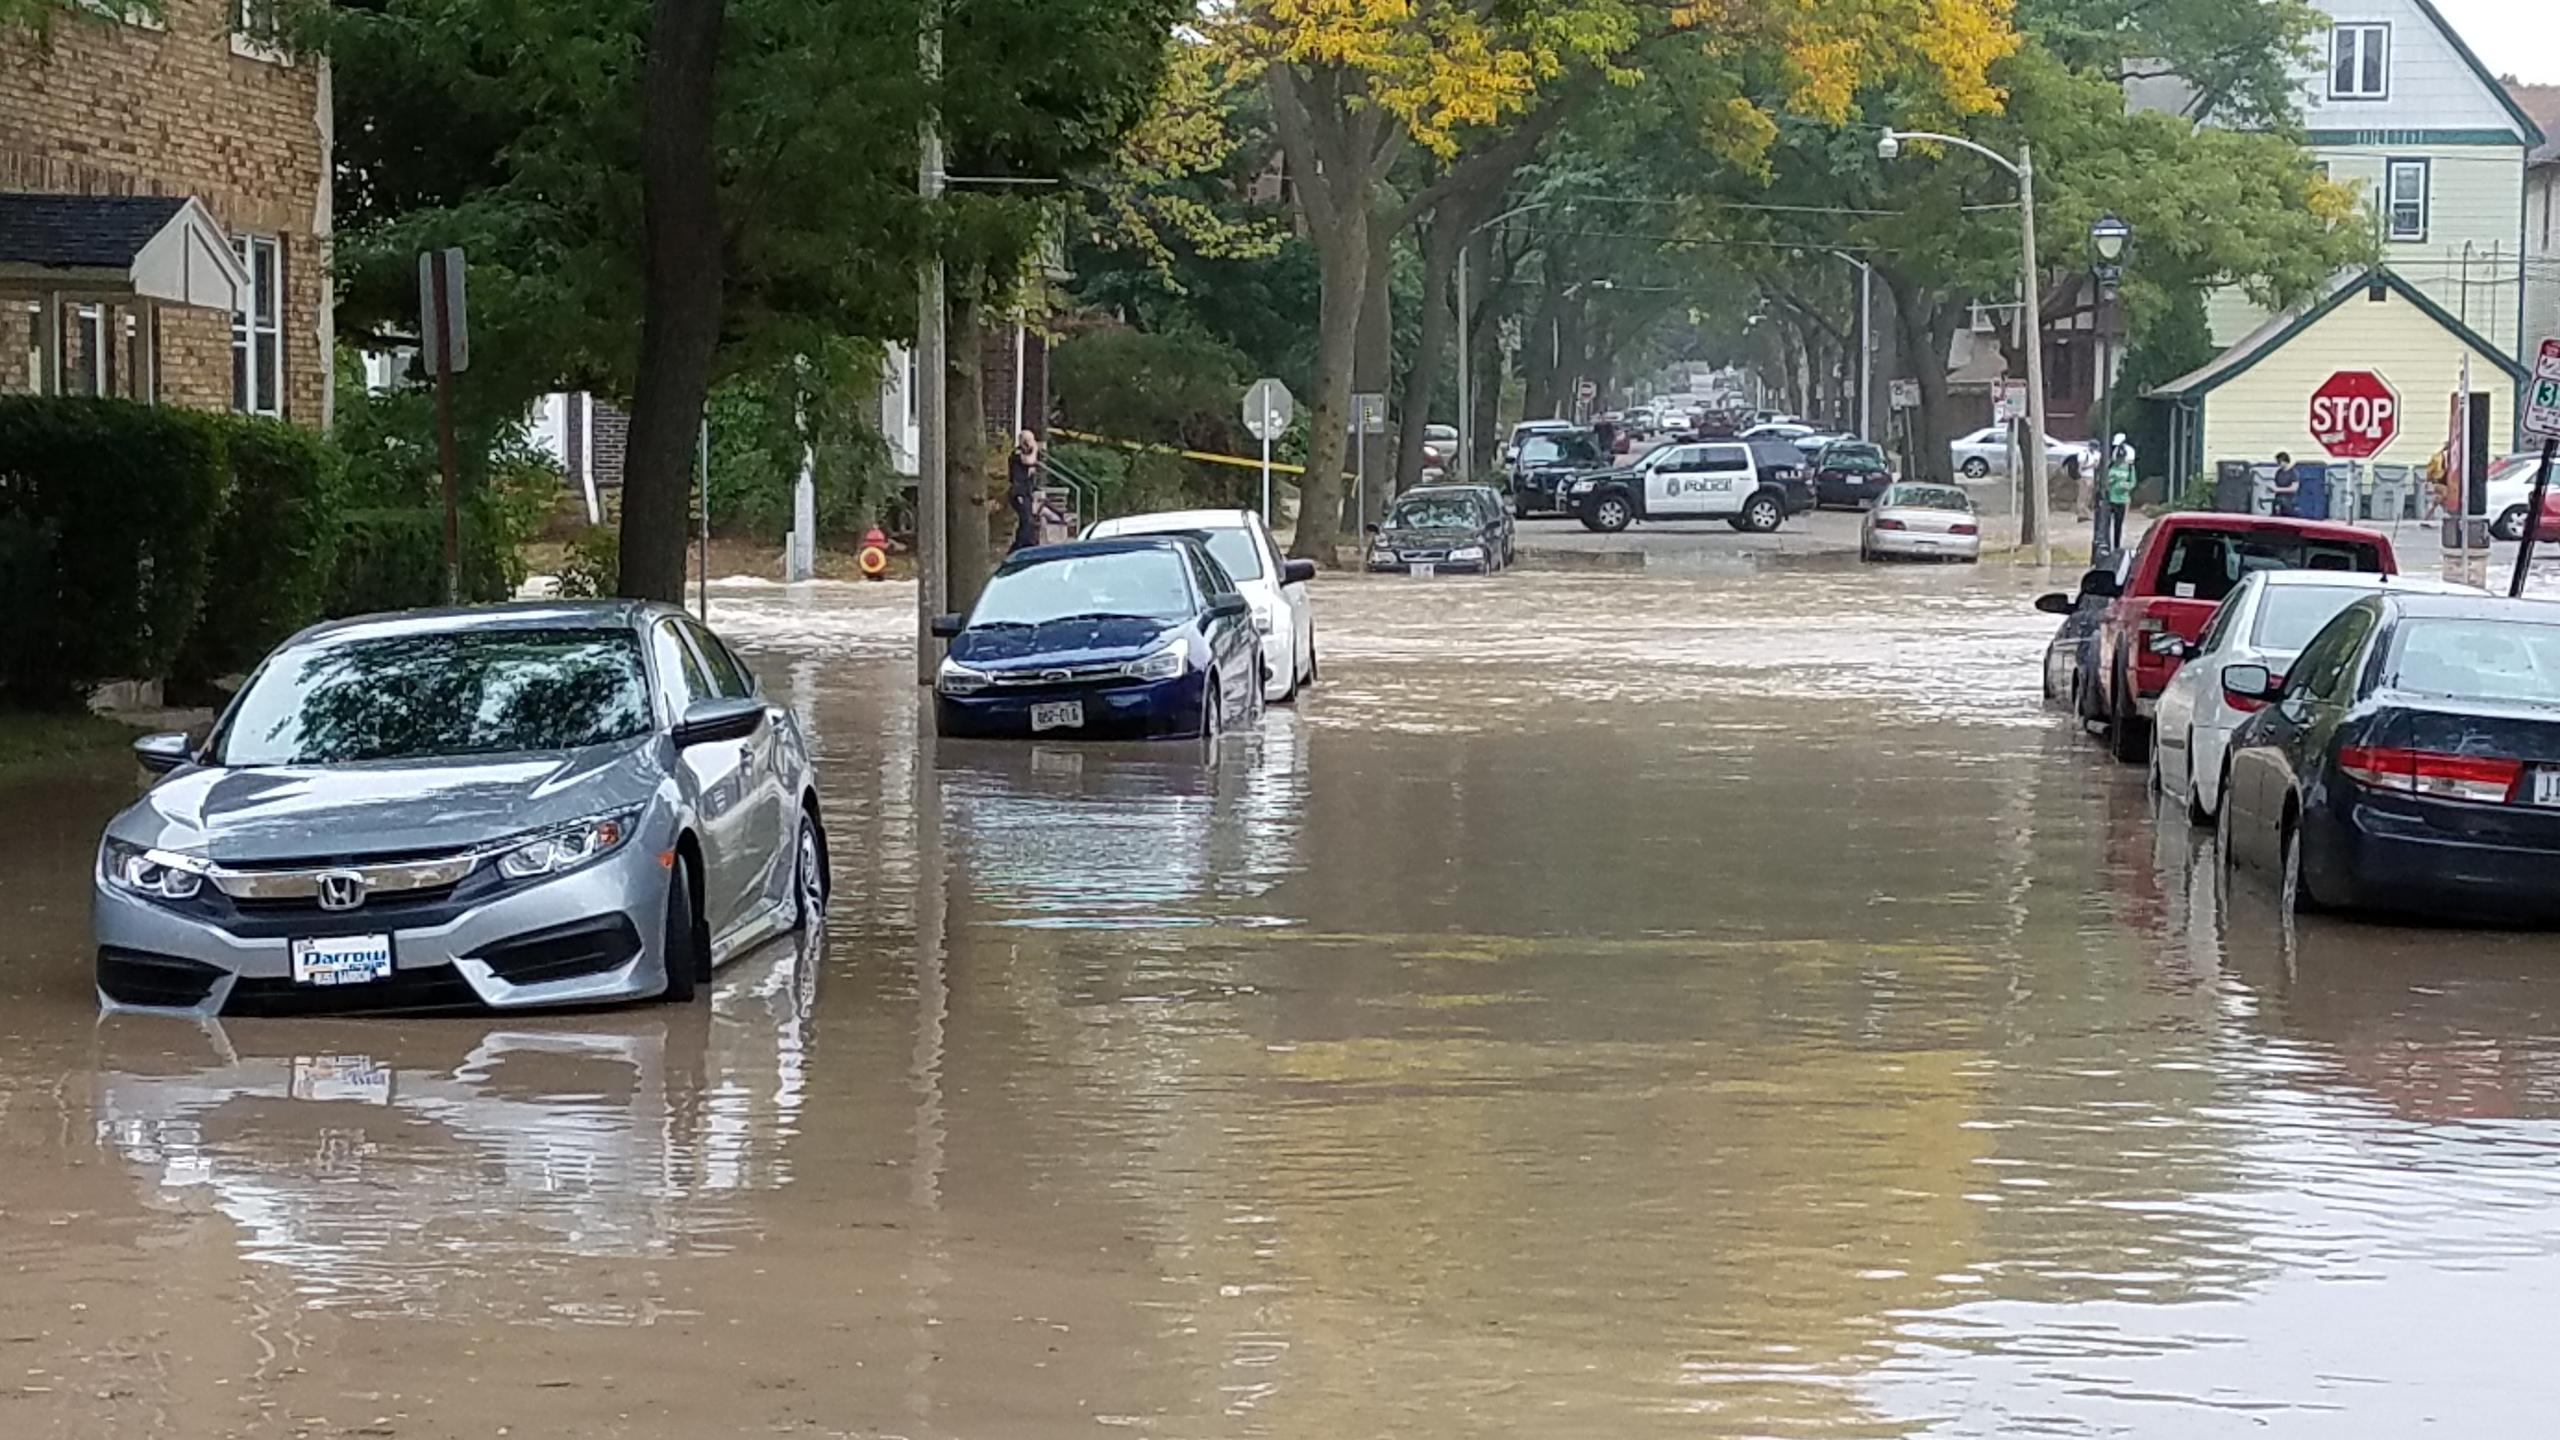 Water main rupture puts neighborhood under water